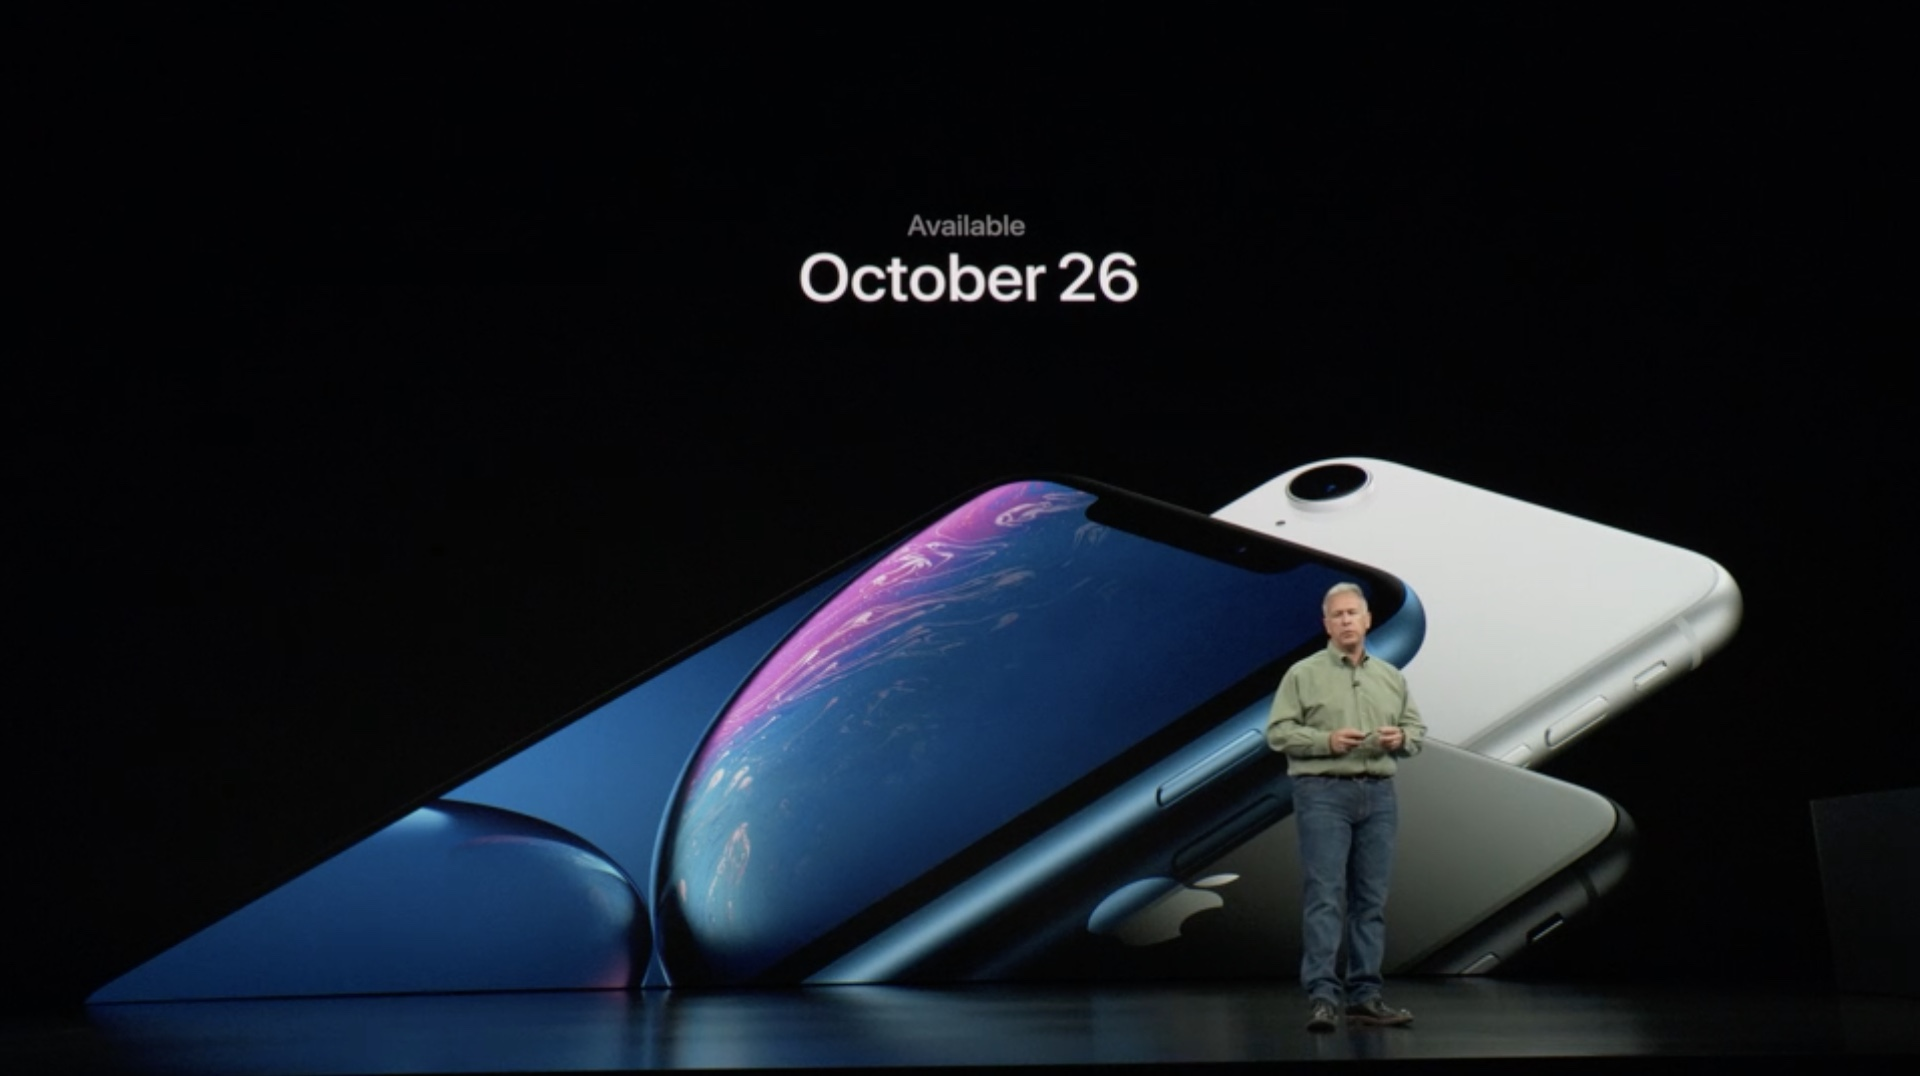 gather-around-apple-event-2018-2754.jpg